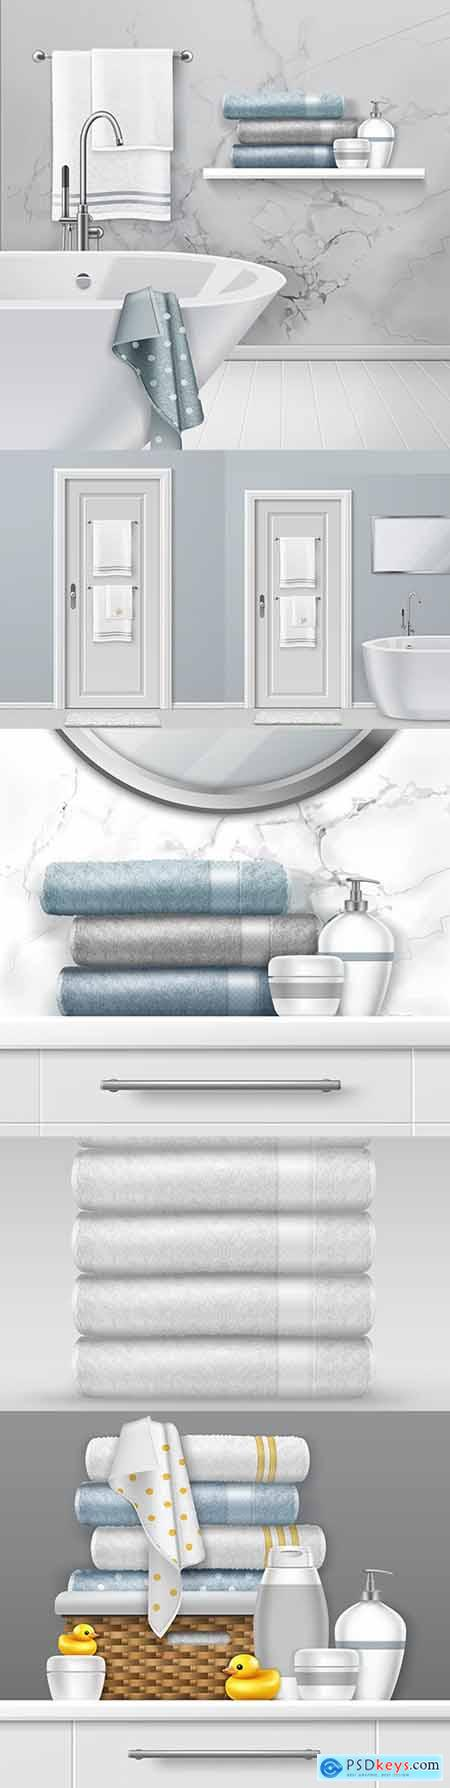 Bathroom and personal care accessories 3rd illustration